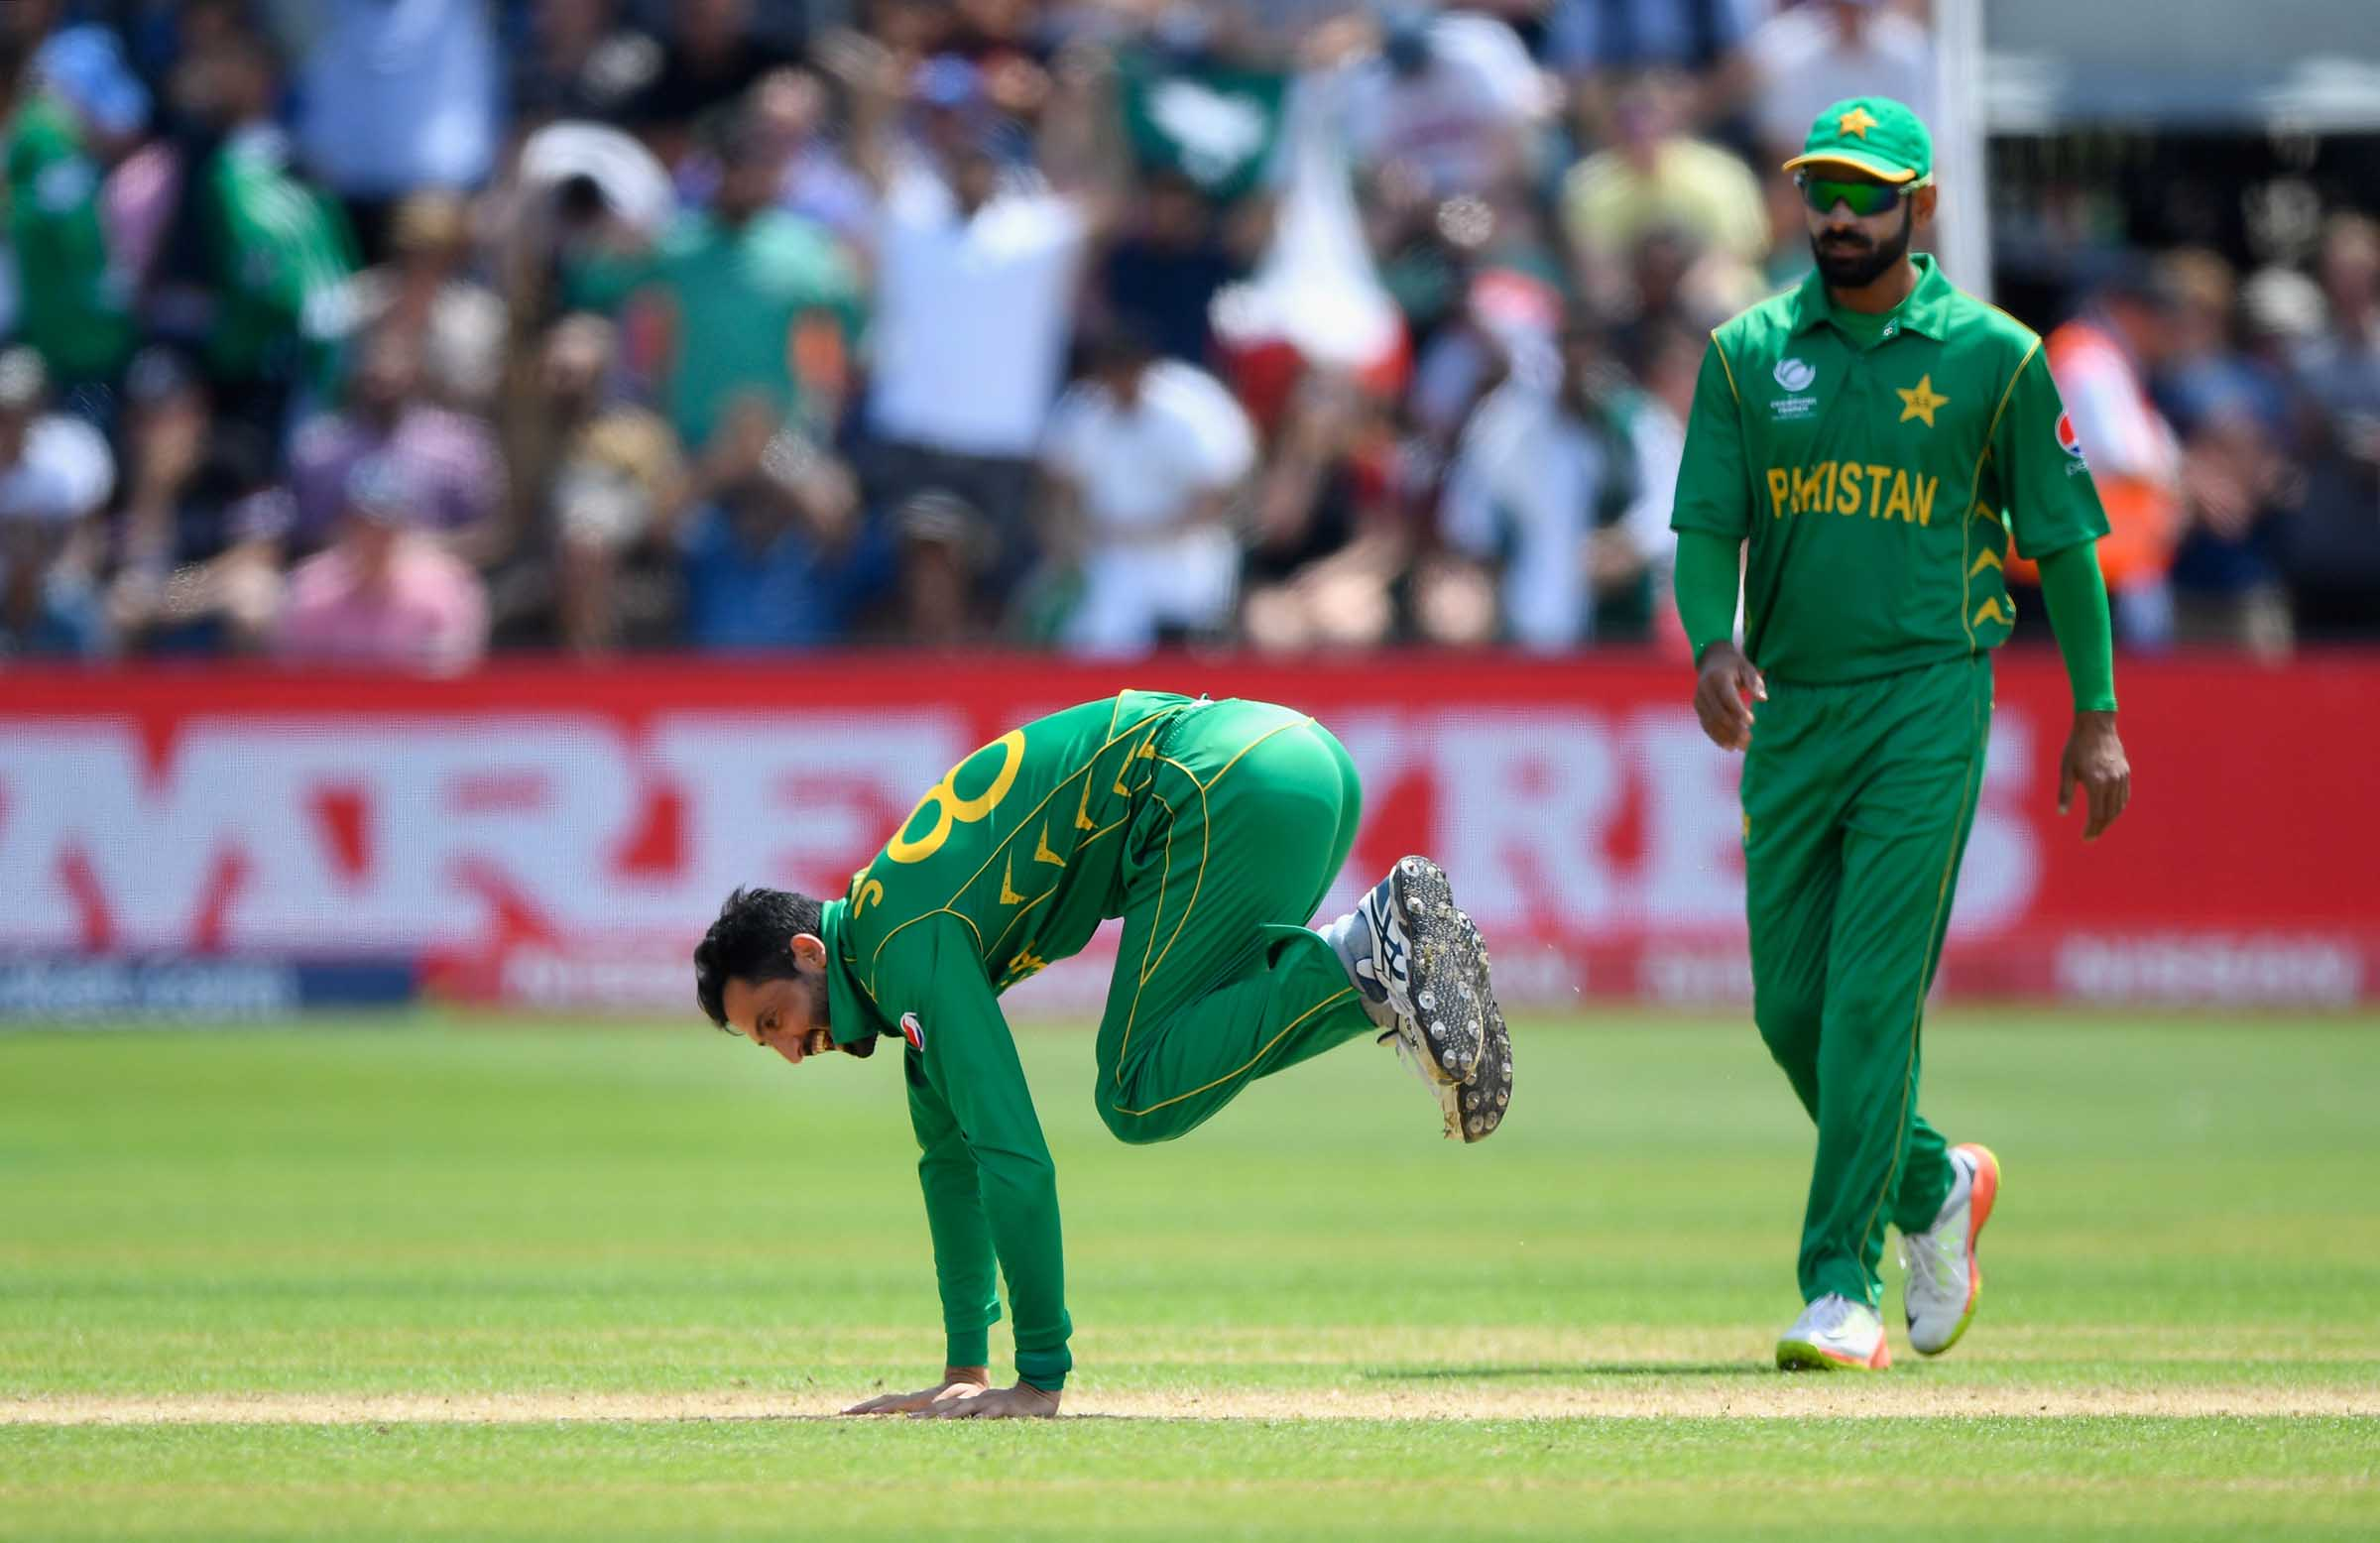 Fakhar Zaman's catch and other turning points from Pakistan's win over England